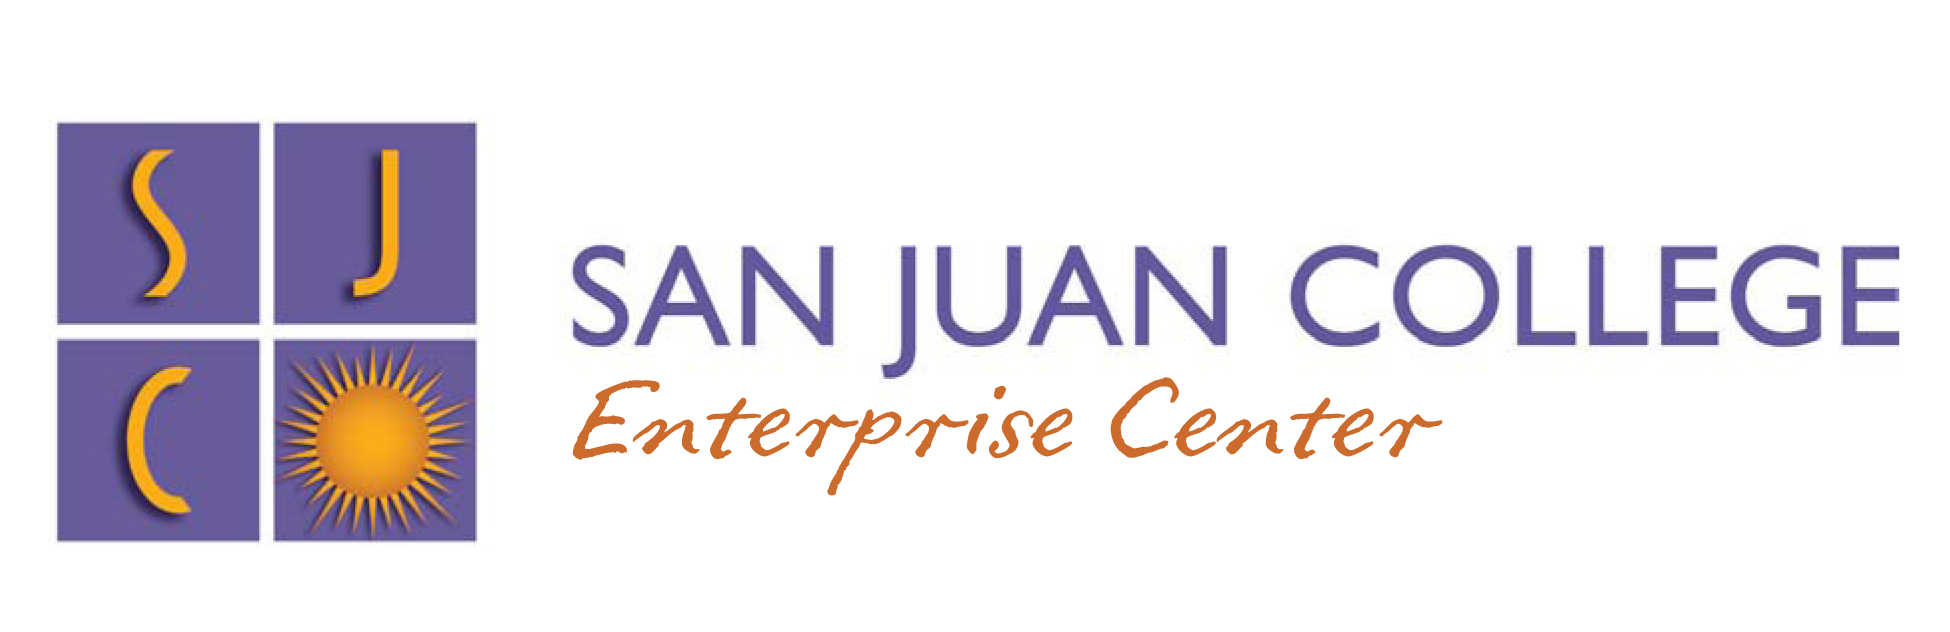 SJC Enterprise Center logo and link to website